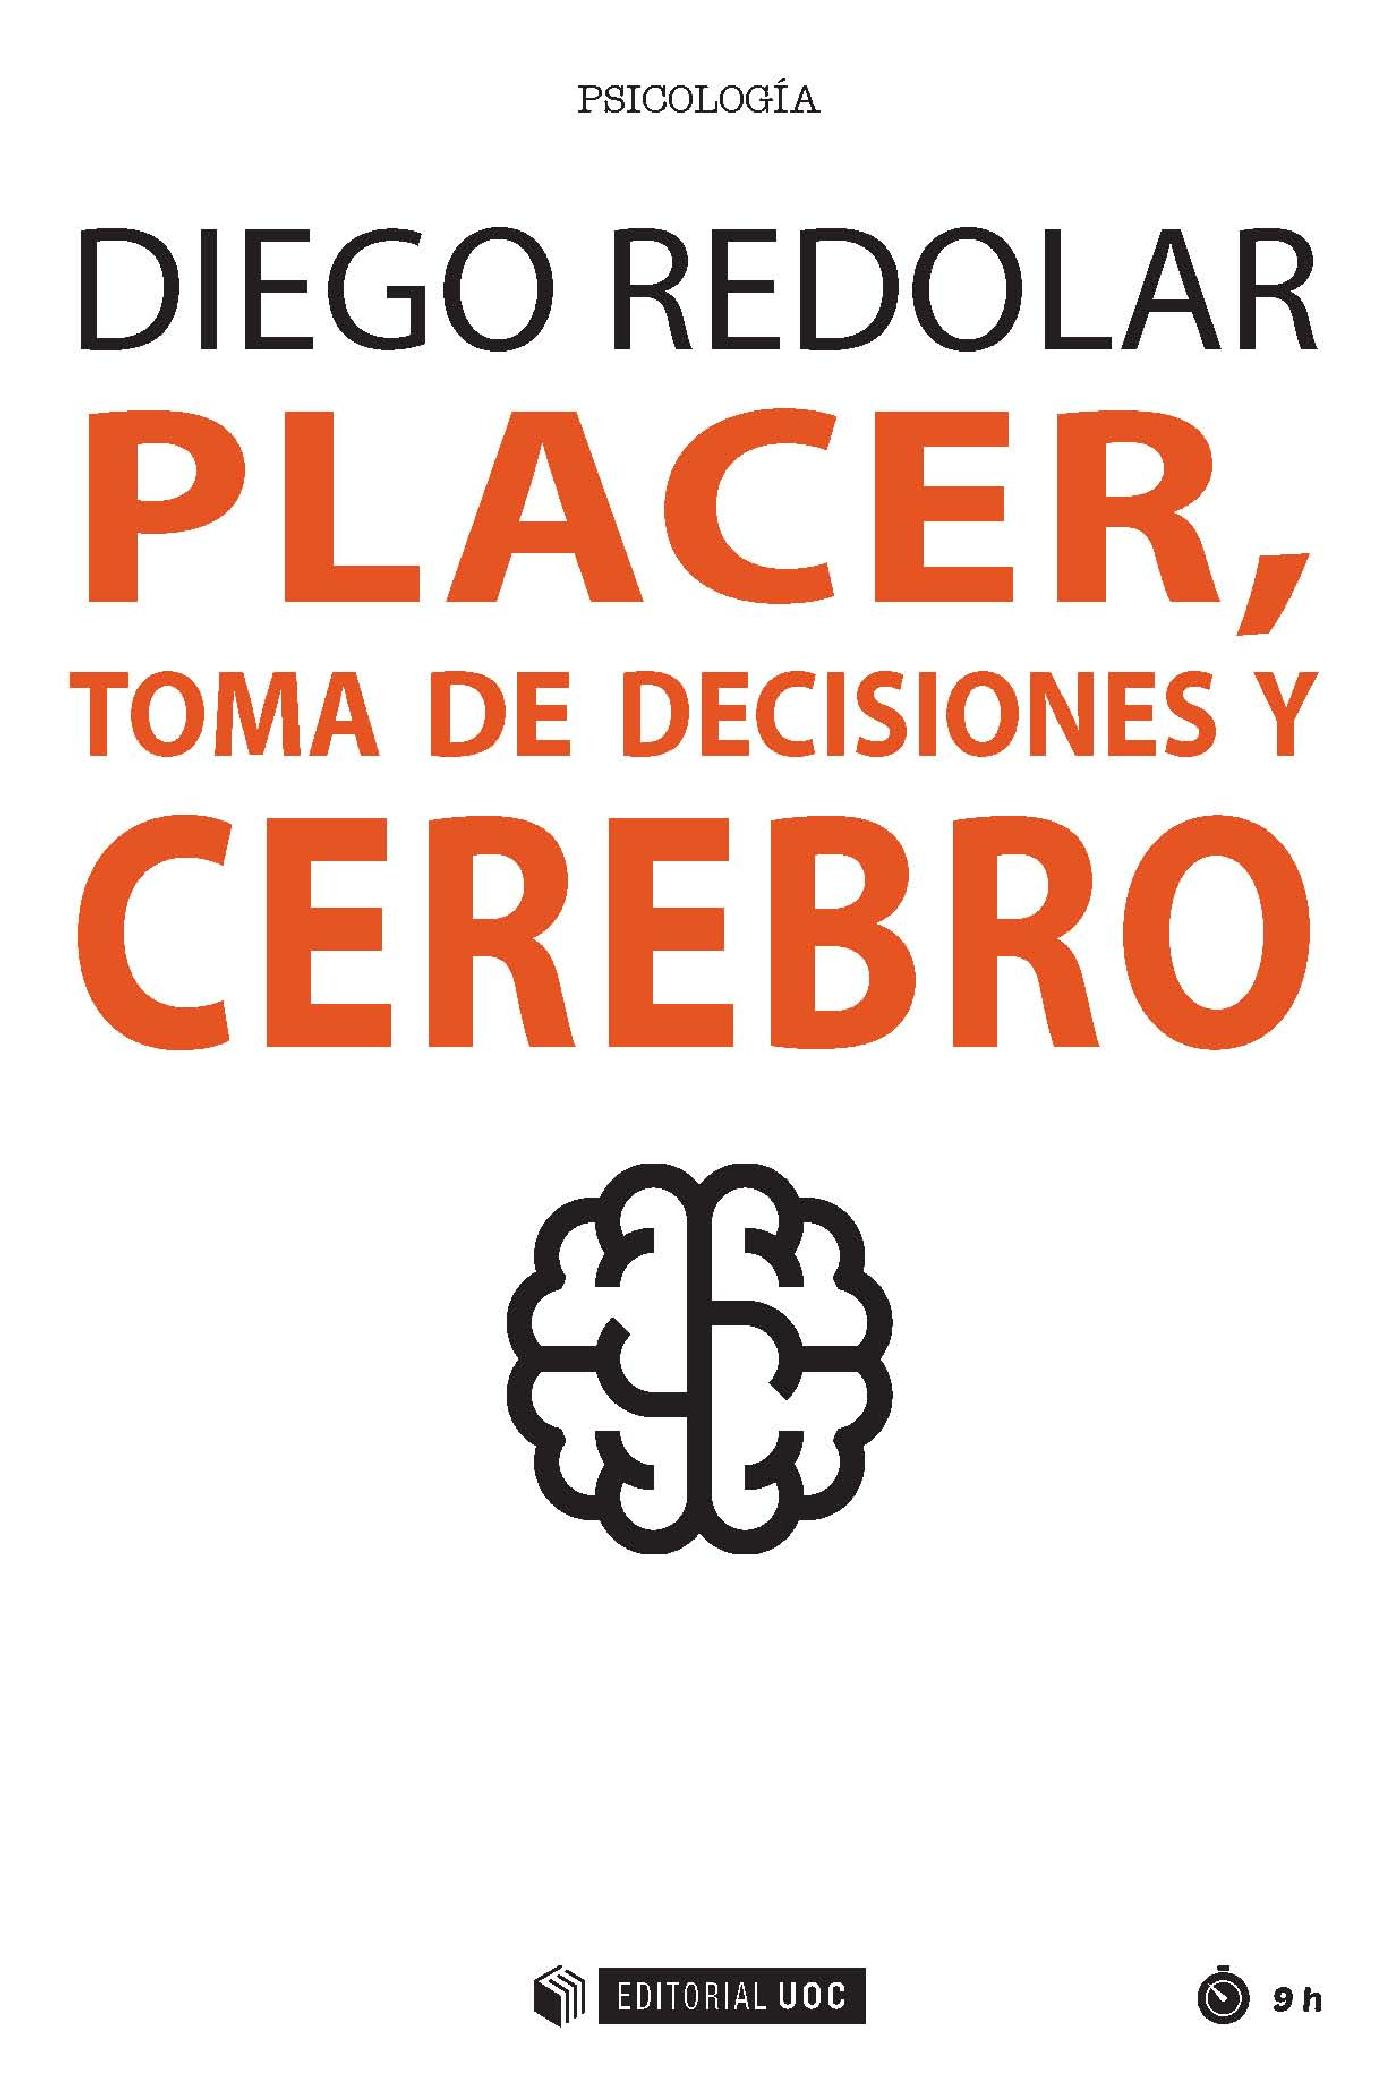 PLACER, TOMA DE DECISIONES Y CEREBRO